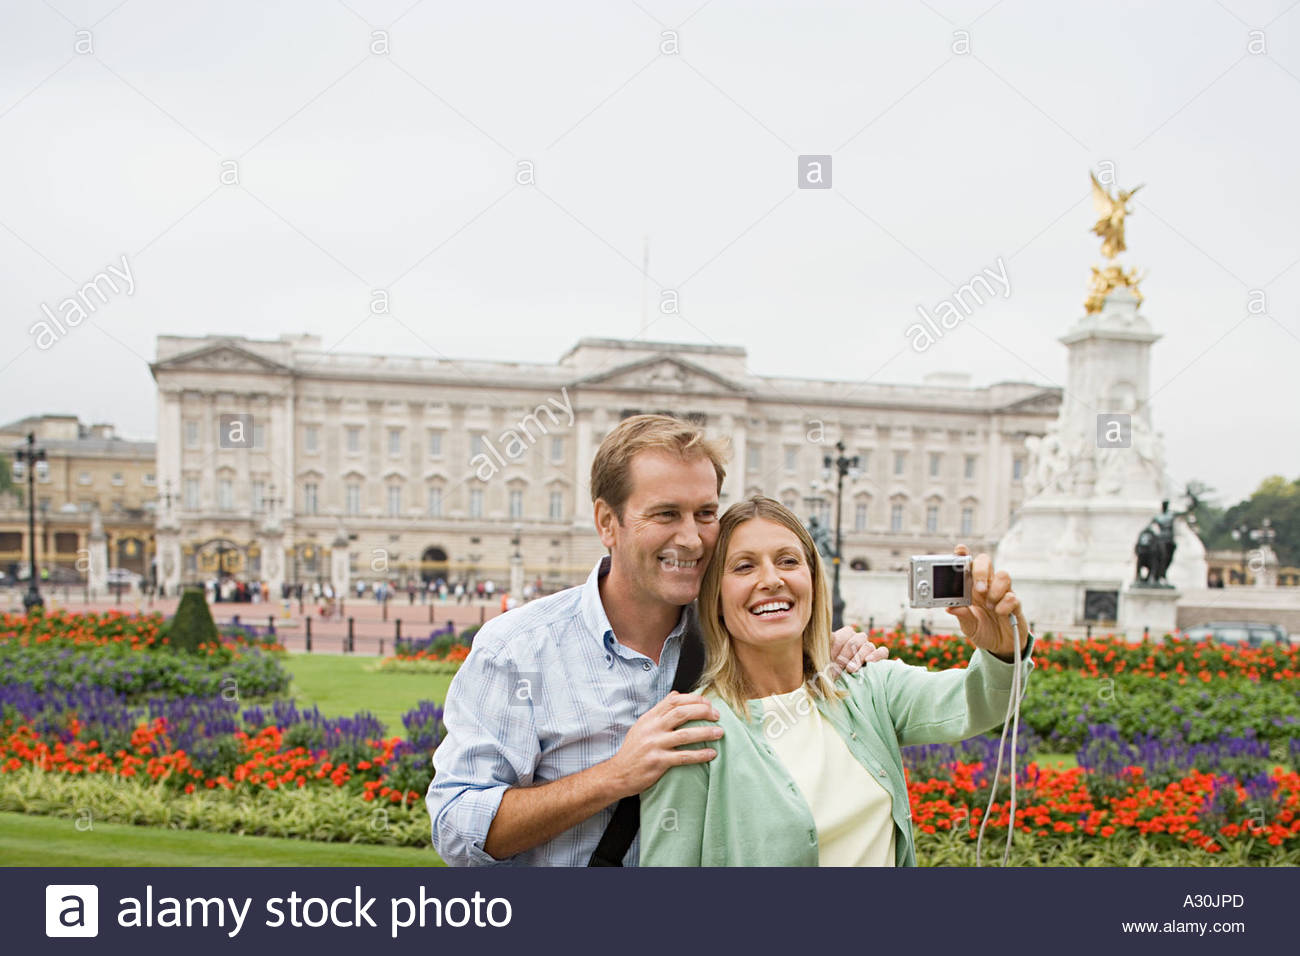 Couple by Buckingham Palace - Stock Image